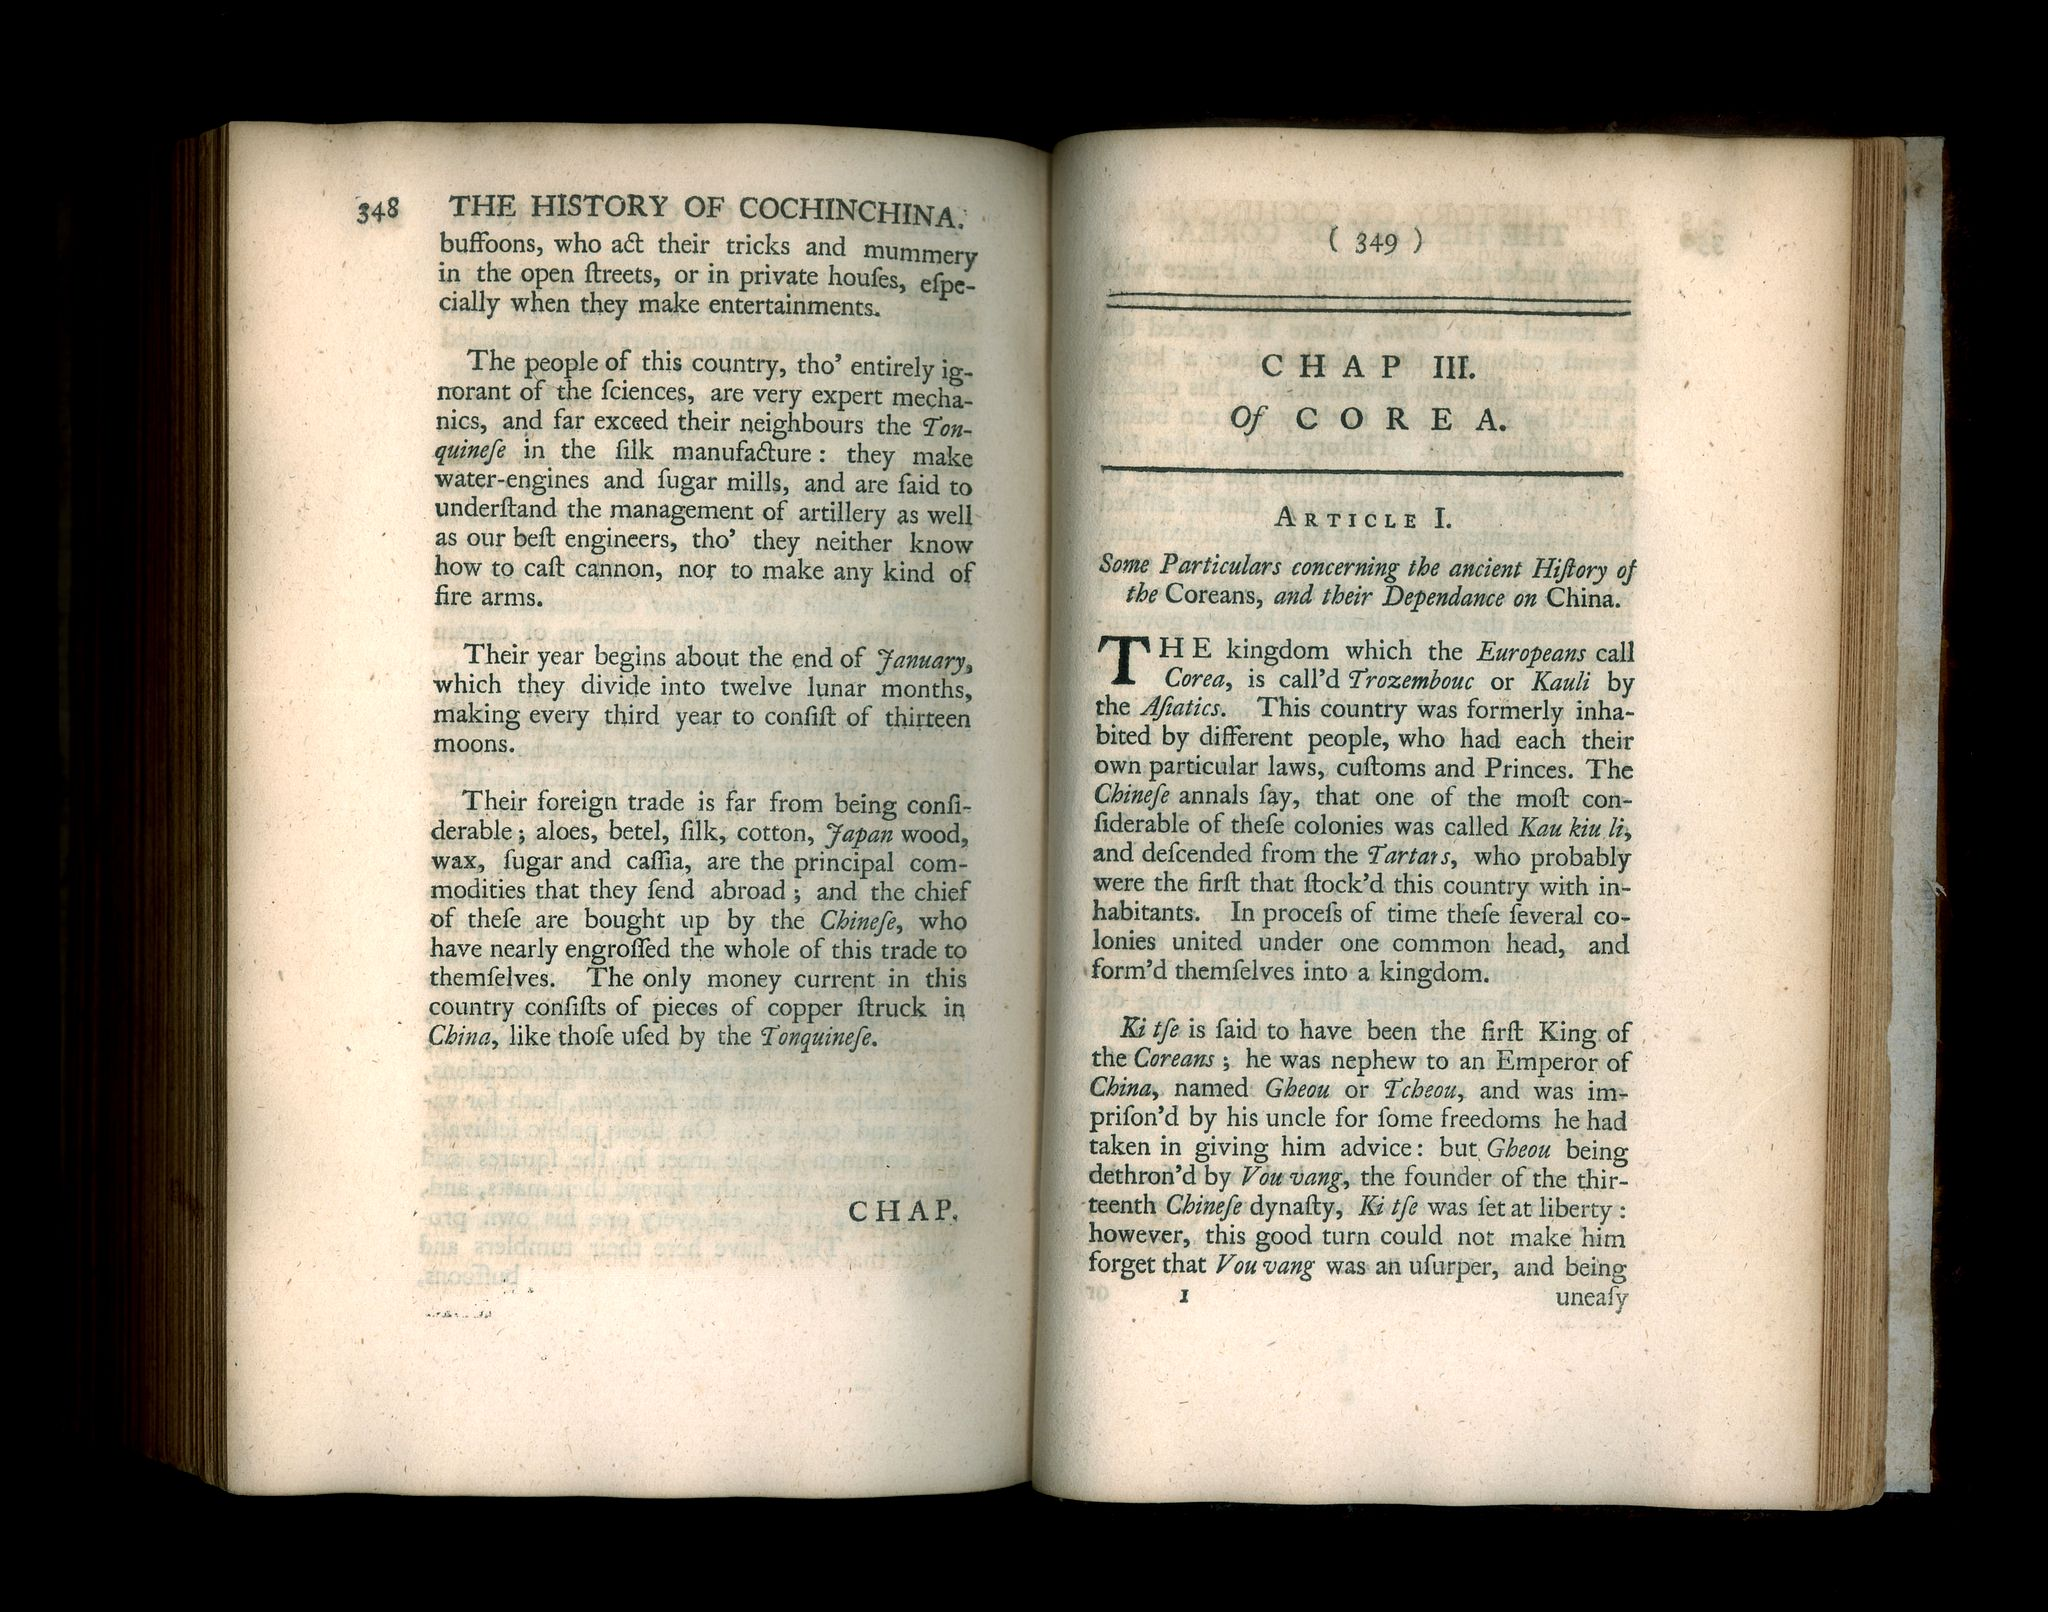 KNAPTON, J. and P. -  The Modern History, by way of sequel to Mr. Rollin's ancient history. Vol. I. Containing the history of China.